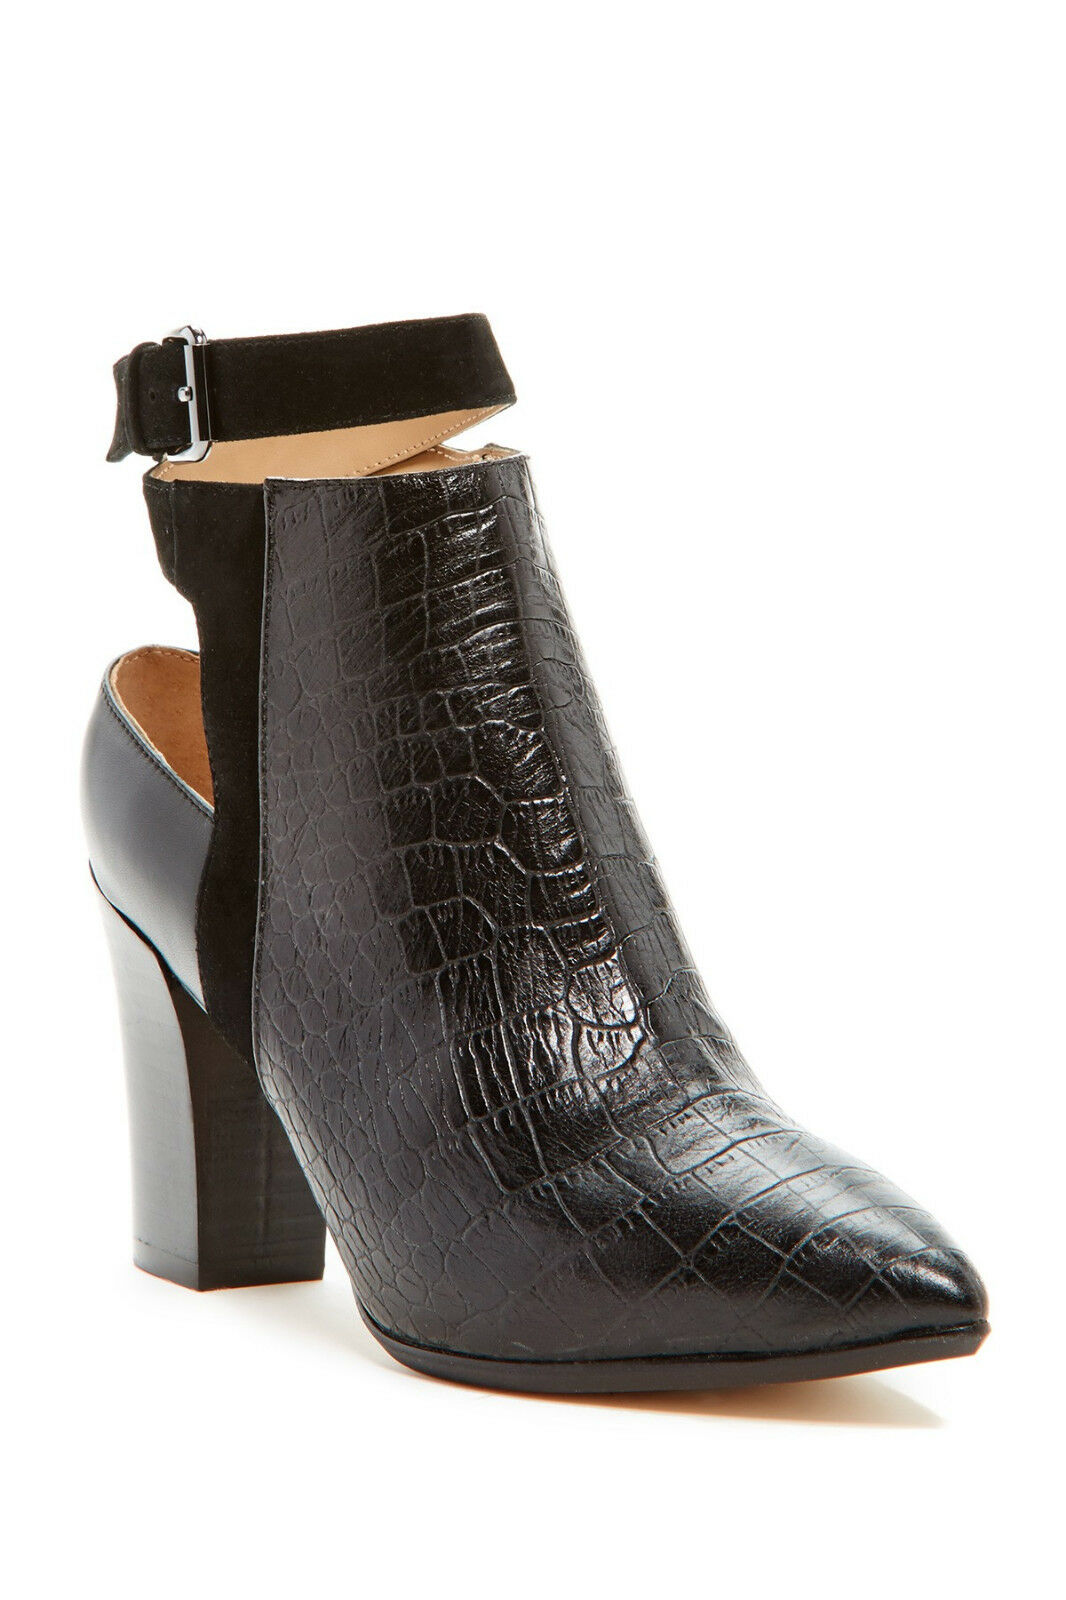 Nicole Miller Ginger Genuine Leather Croco Embossed Bootie, Size 9.5 M,  190 NWB